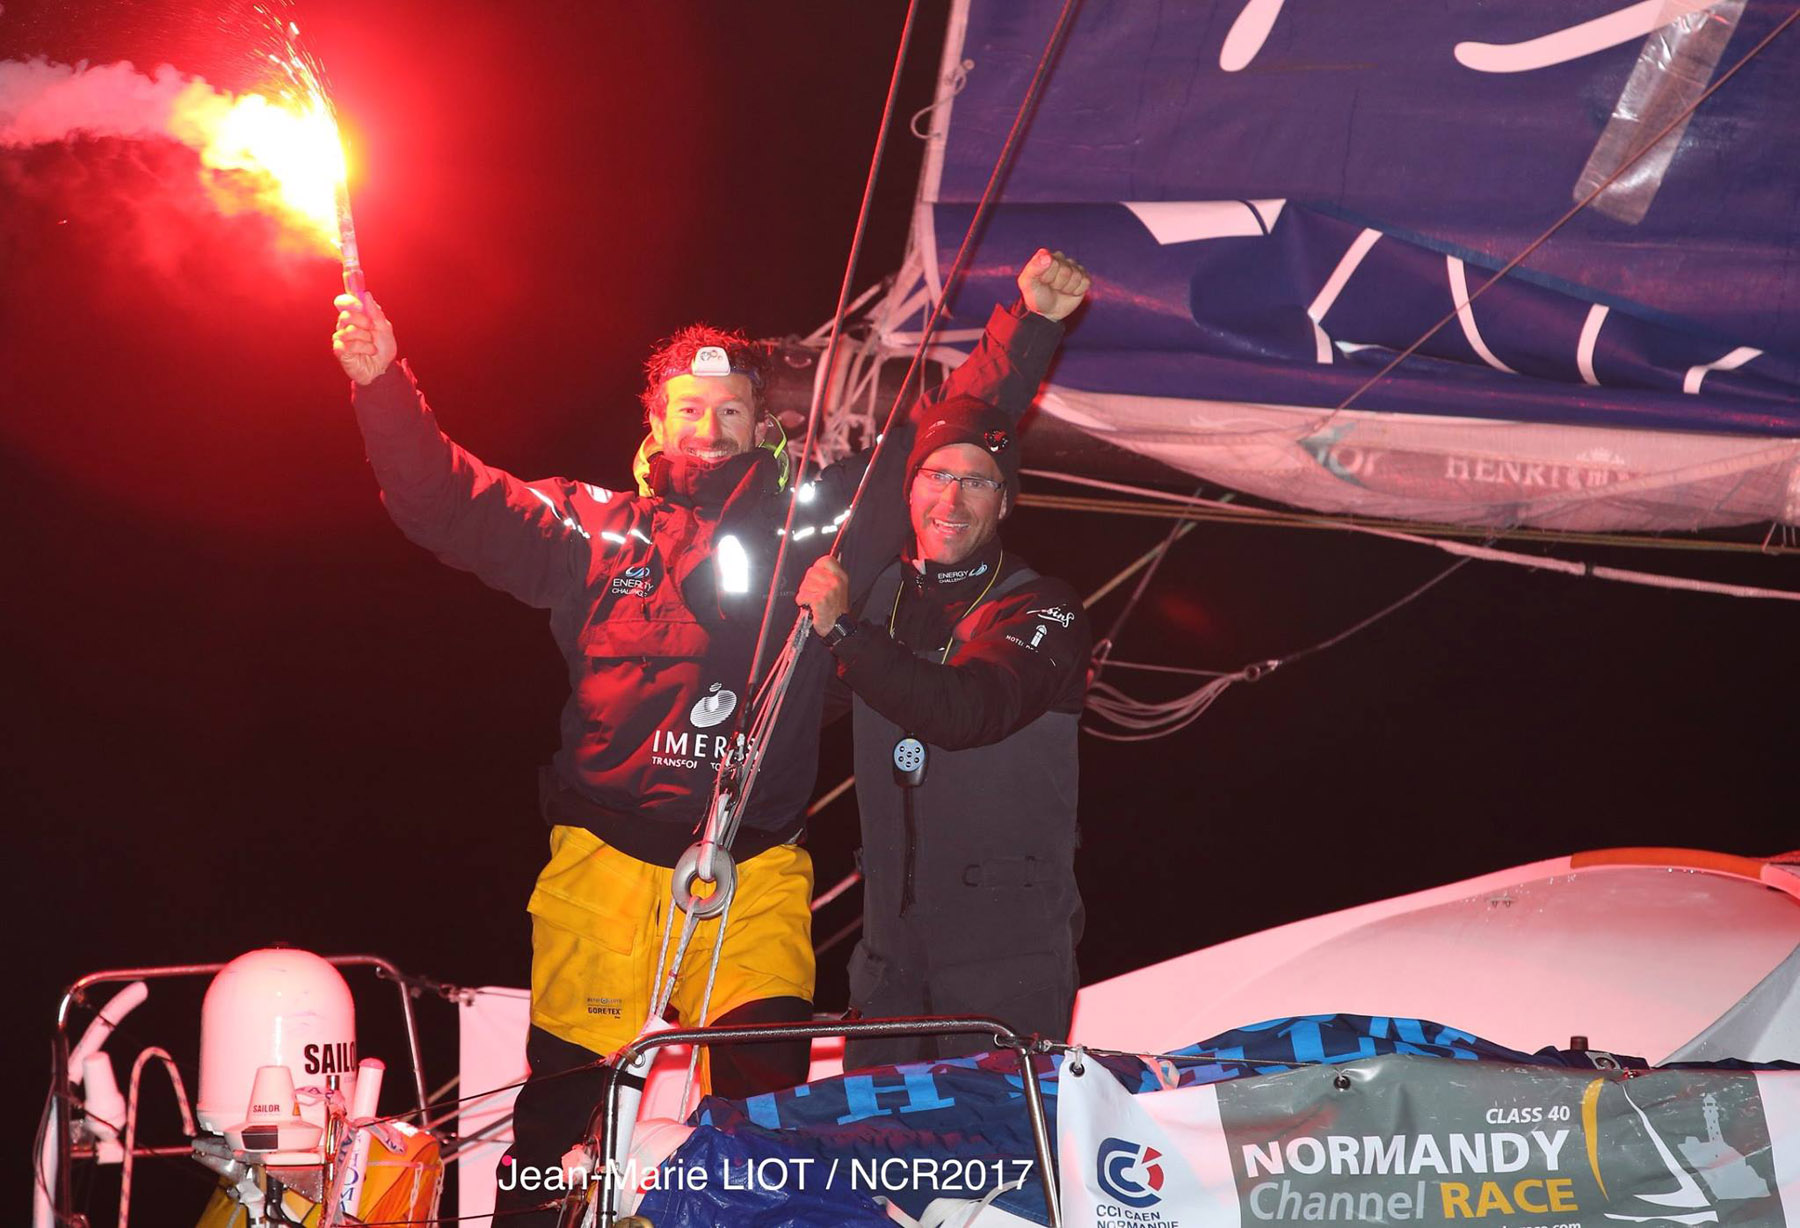 Victory for Phil Sharp and Pablo Santurde in the Normandy Channel Race